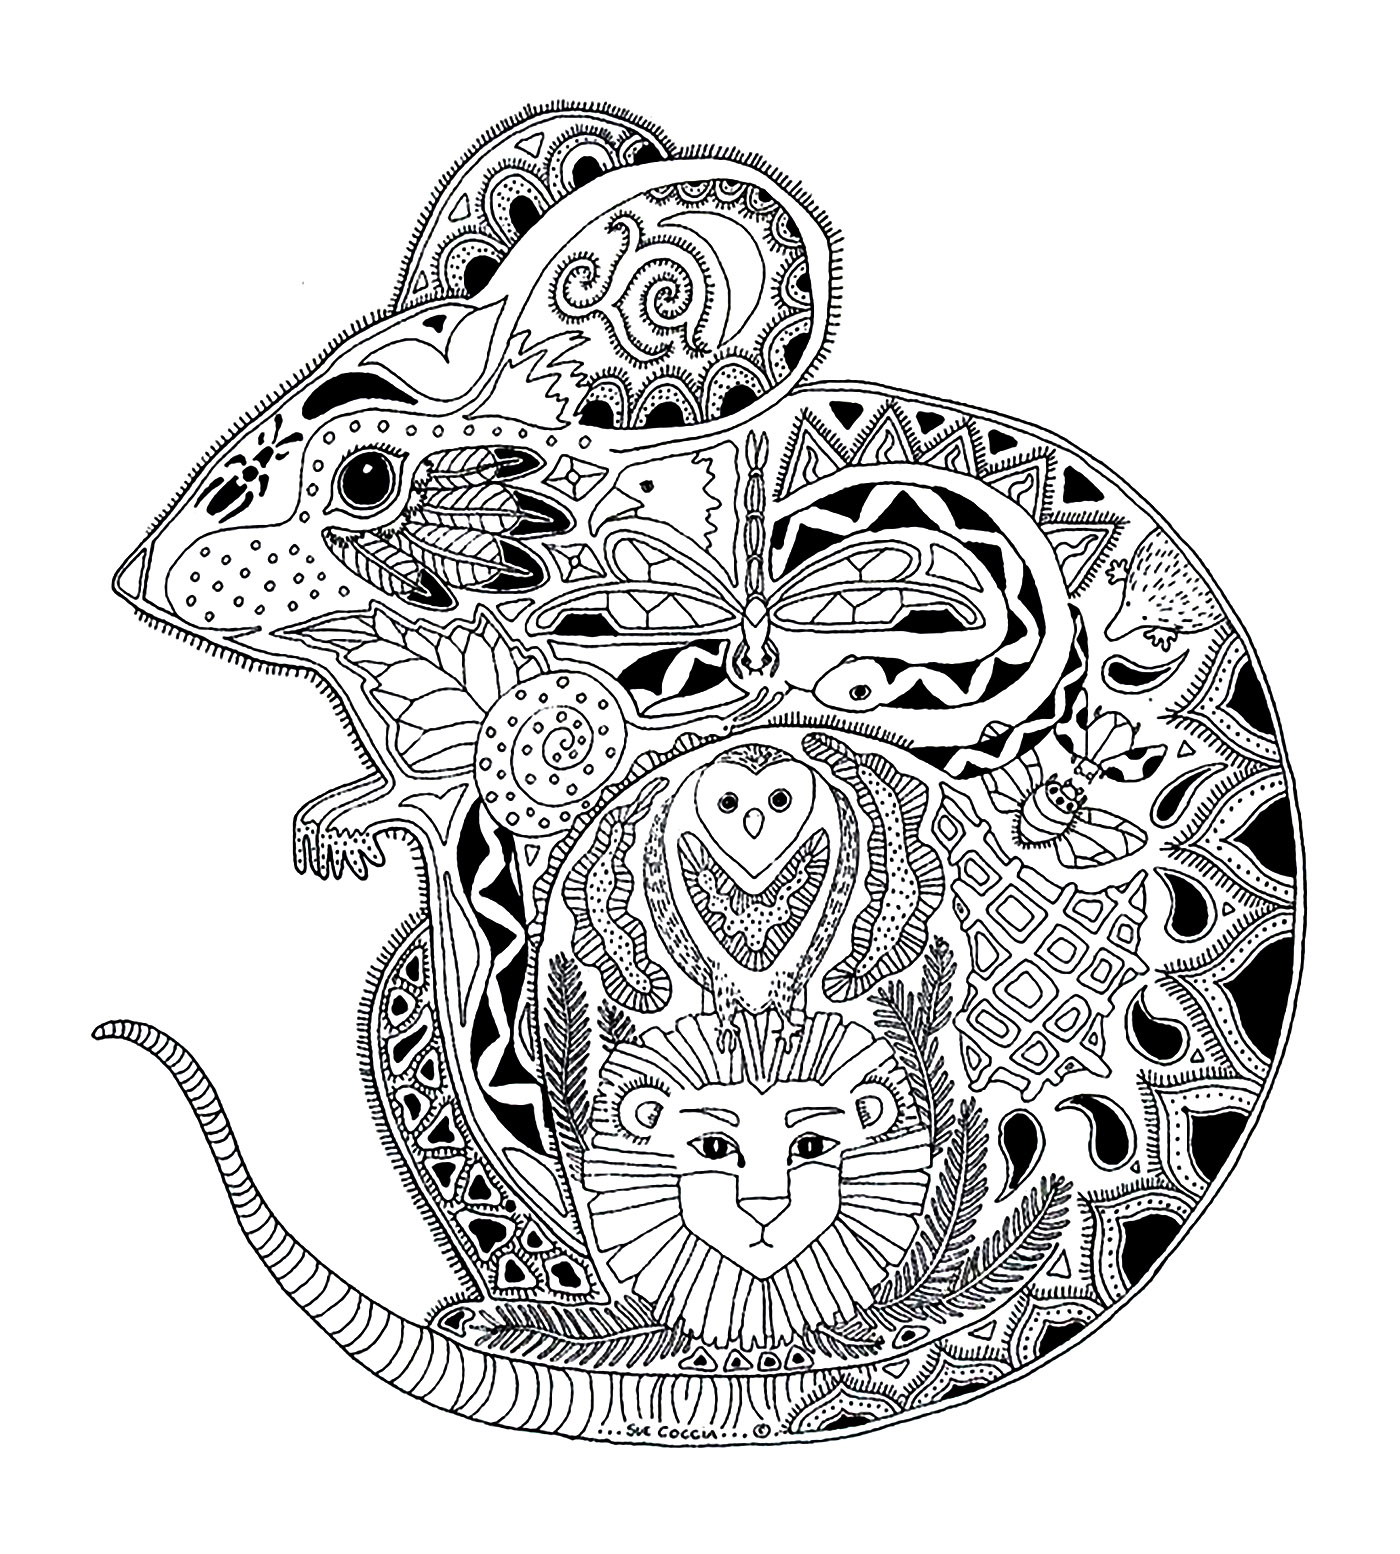 Drawing of a mouse, with interesting details